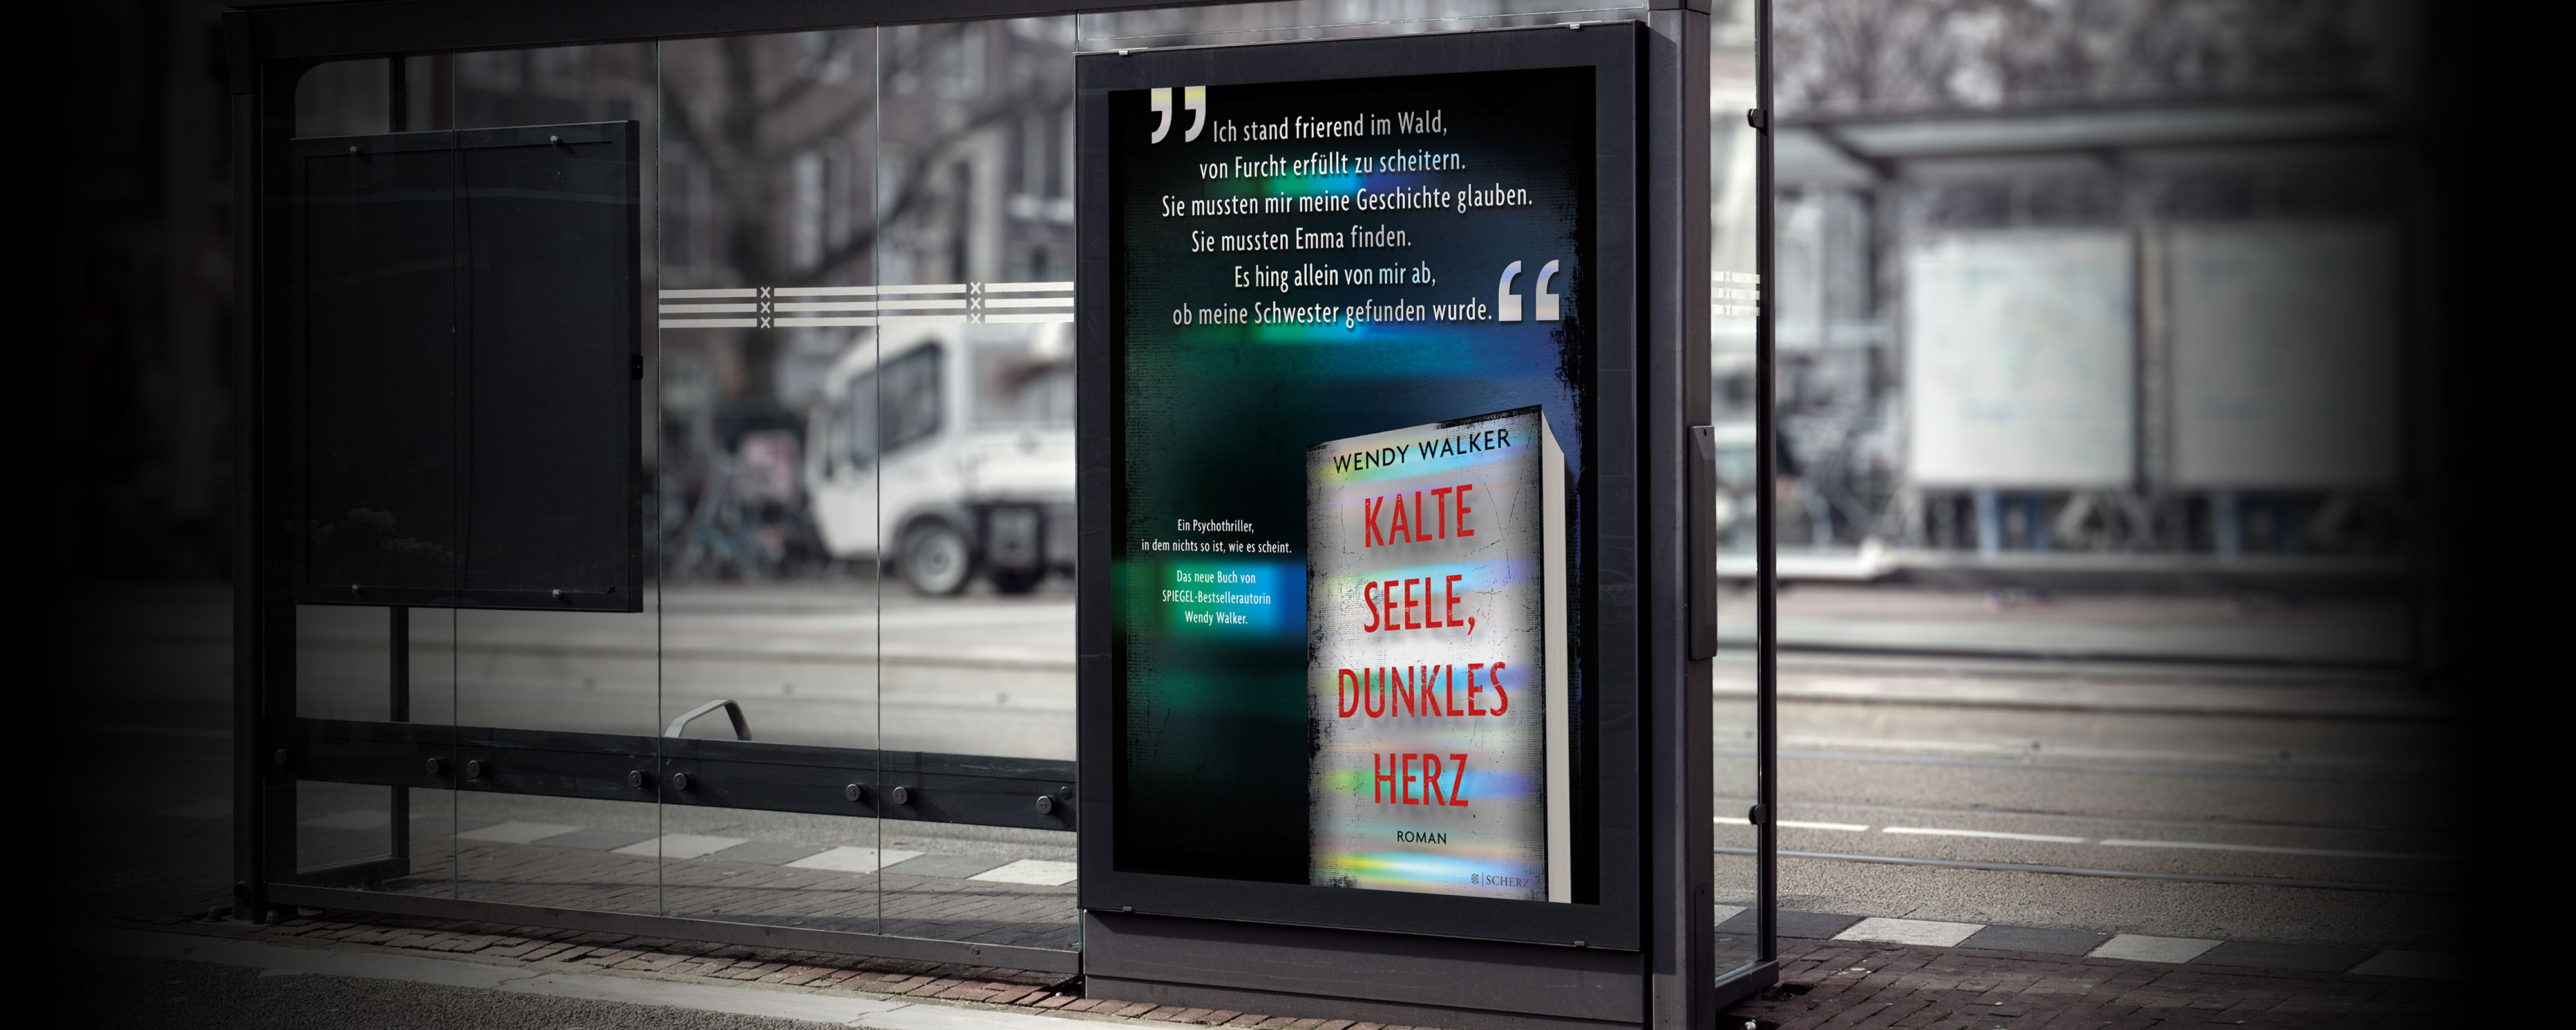 Scherz – Wendy Walker; Kalte Seele, dunkles Herz City Light Poster